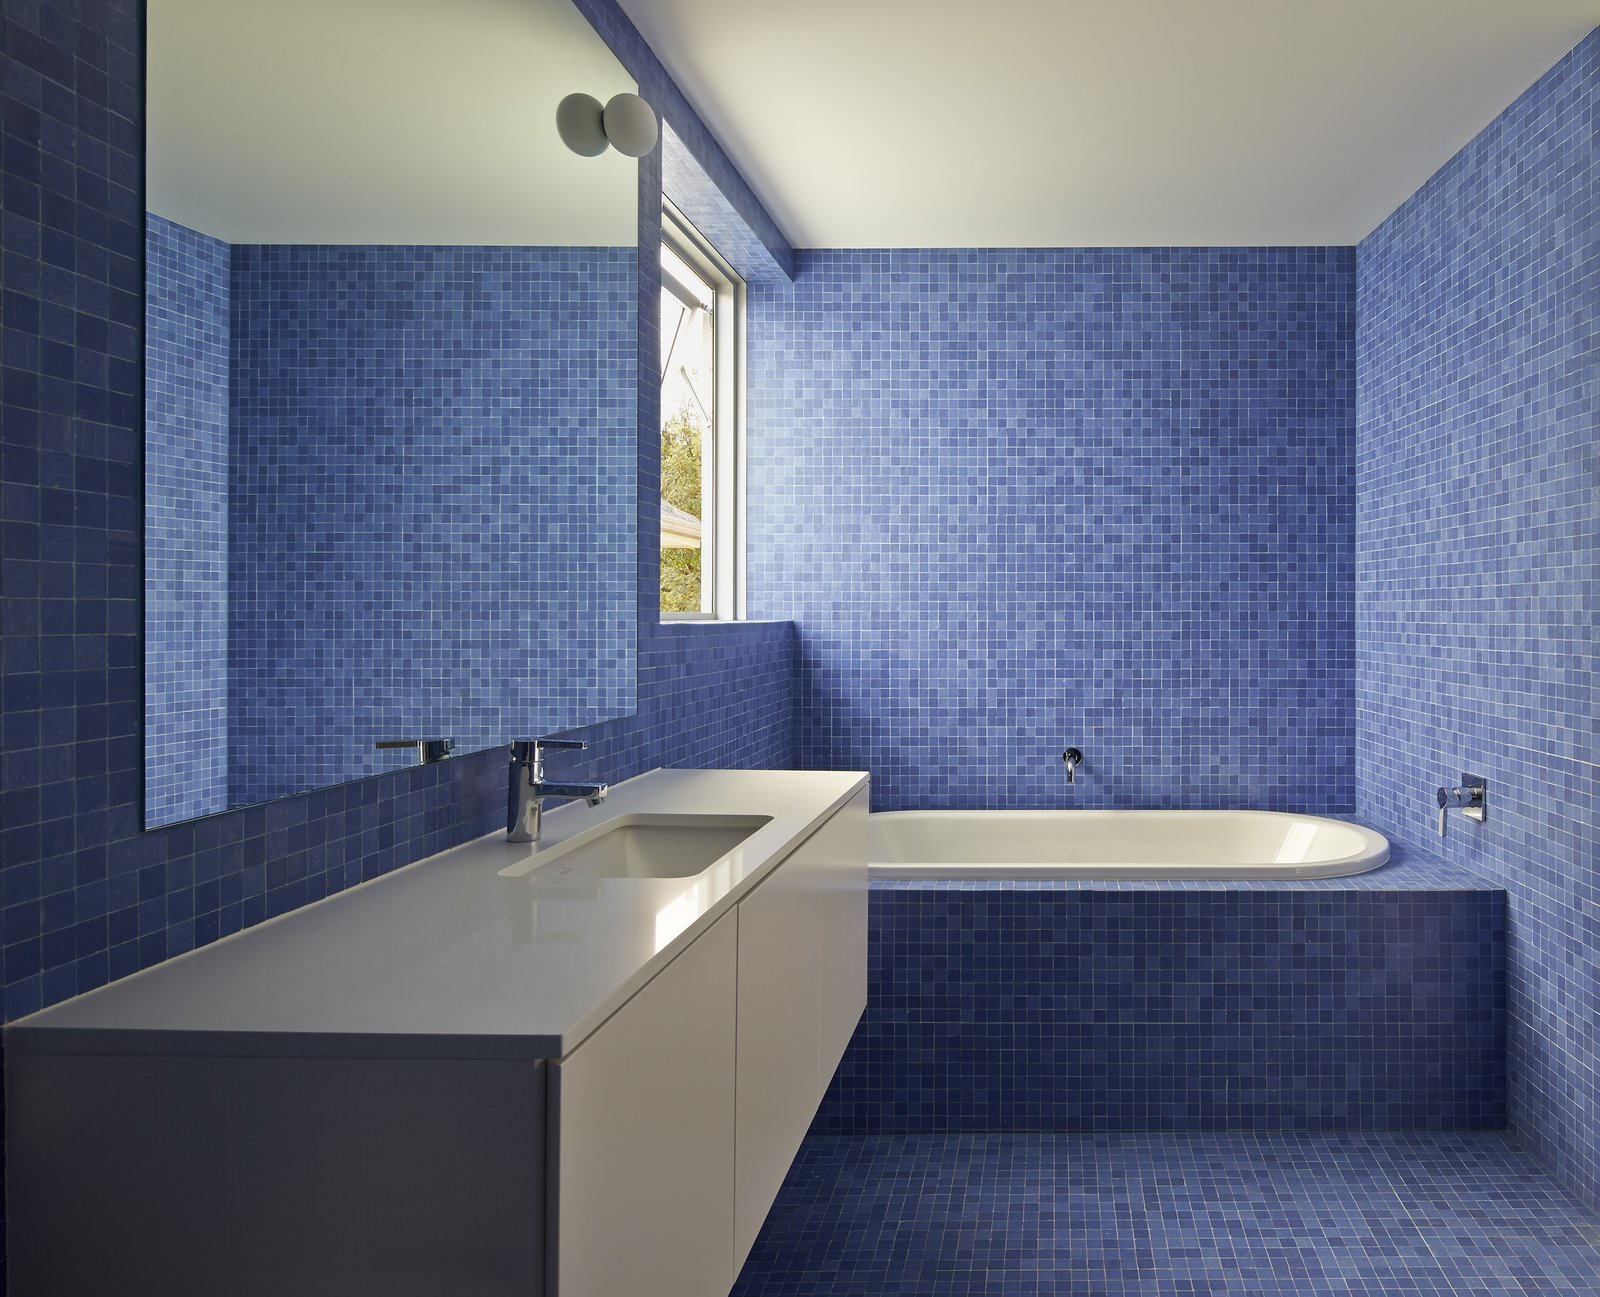 Large Blue Bathroom Tiles 7 Essential Tips For Choosing the Perfect Bathroom Tile